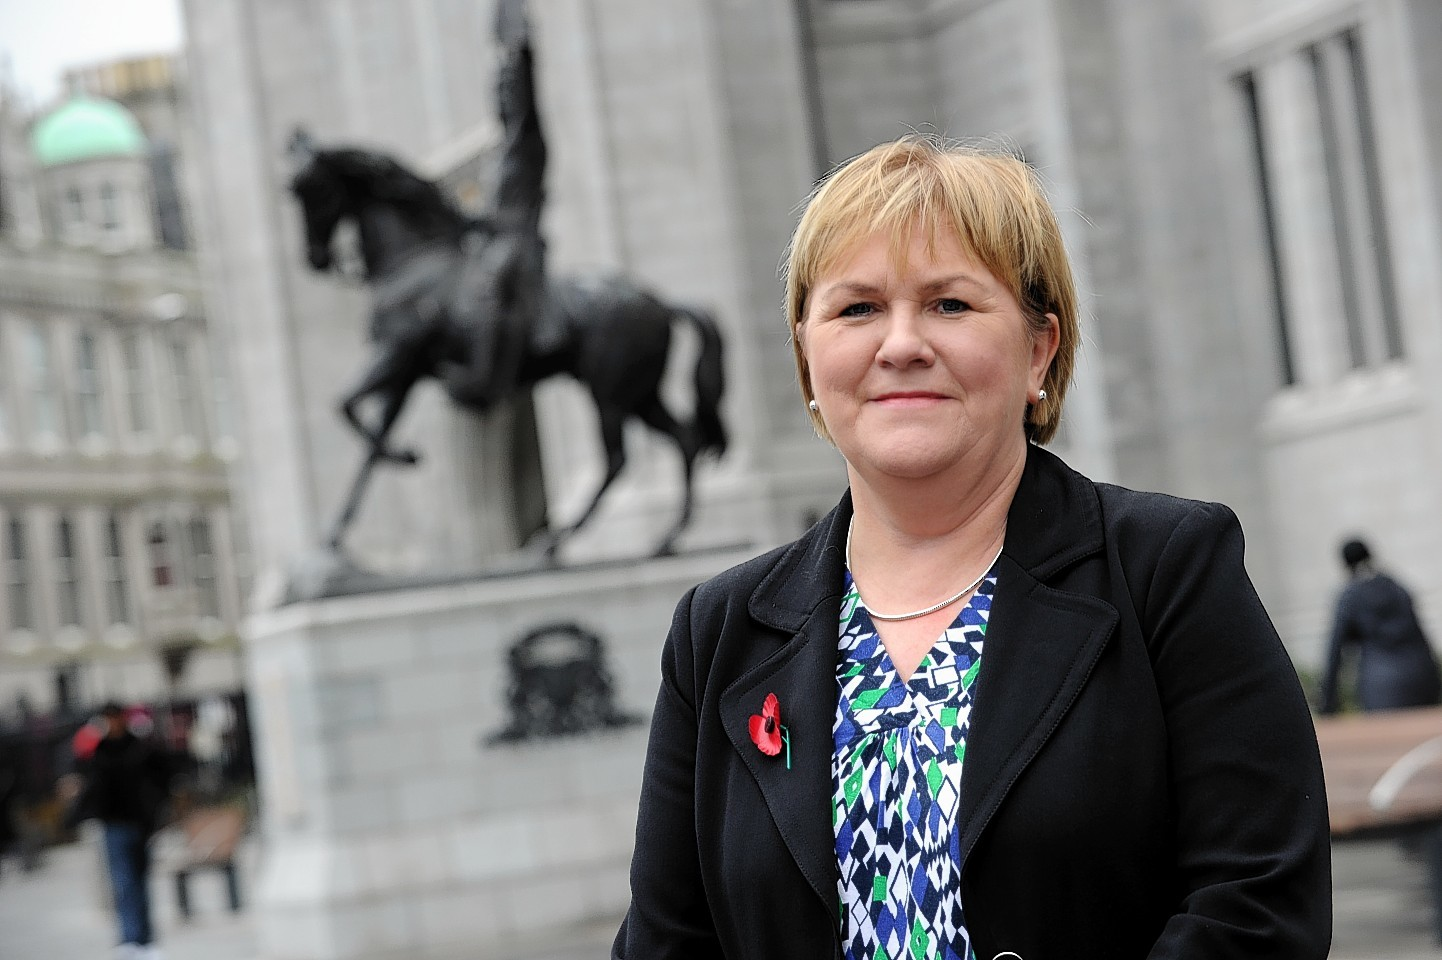 Scottish Labour leader Johann Lamont said bankers' bonus tax could get Scots back to work.